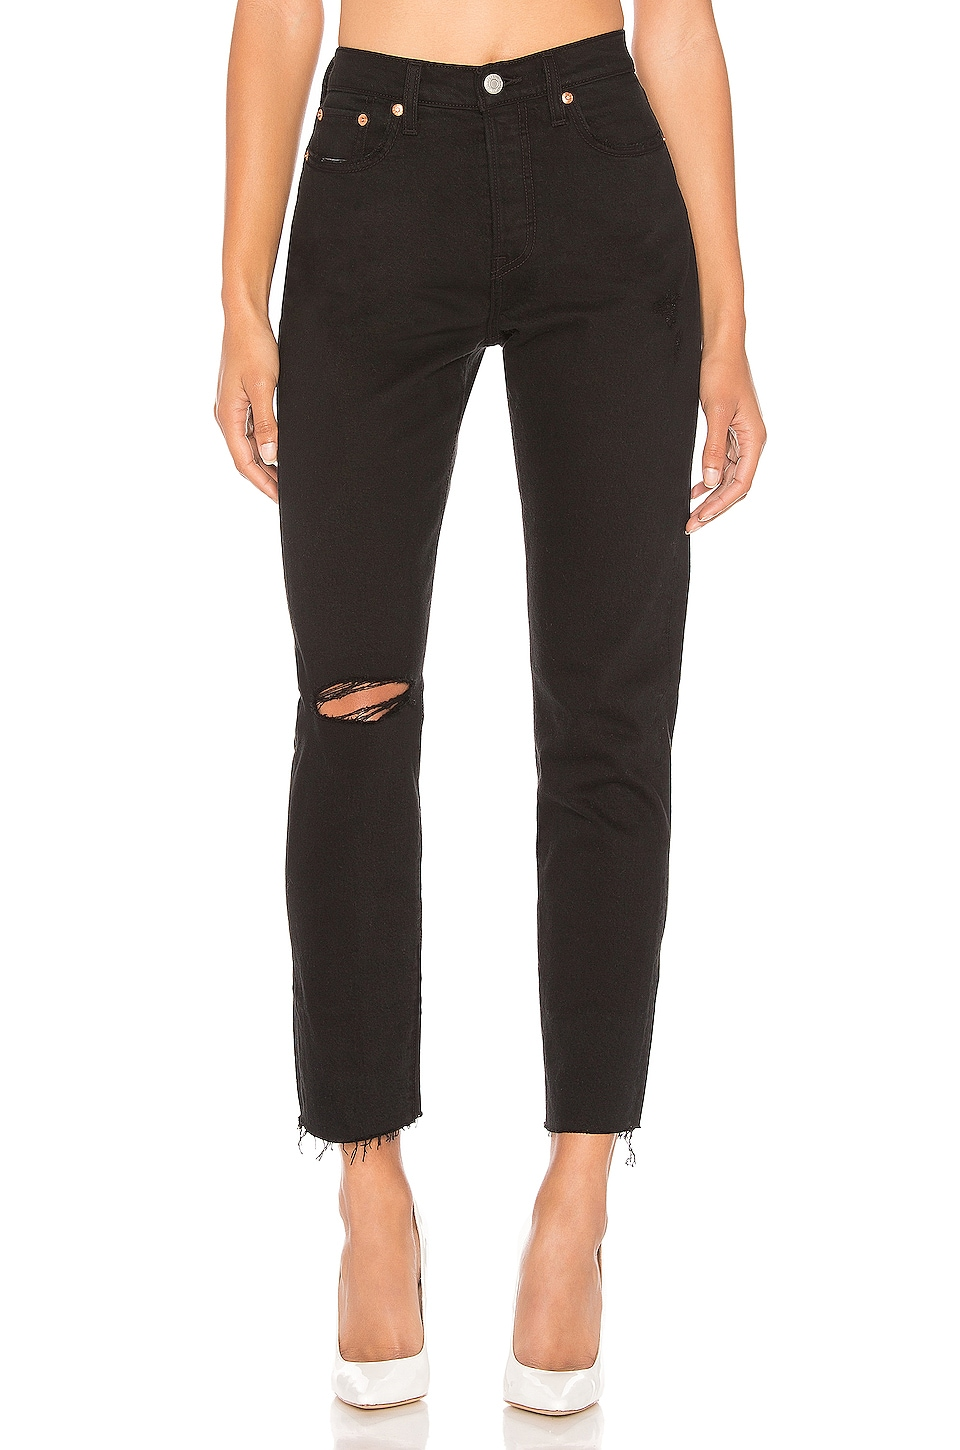 Wedgie Icon                   LEVI'S                                                                                                                             CA$ 128.16 34